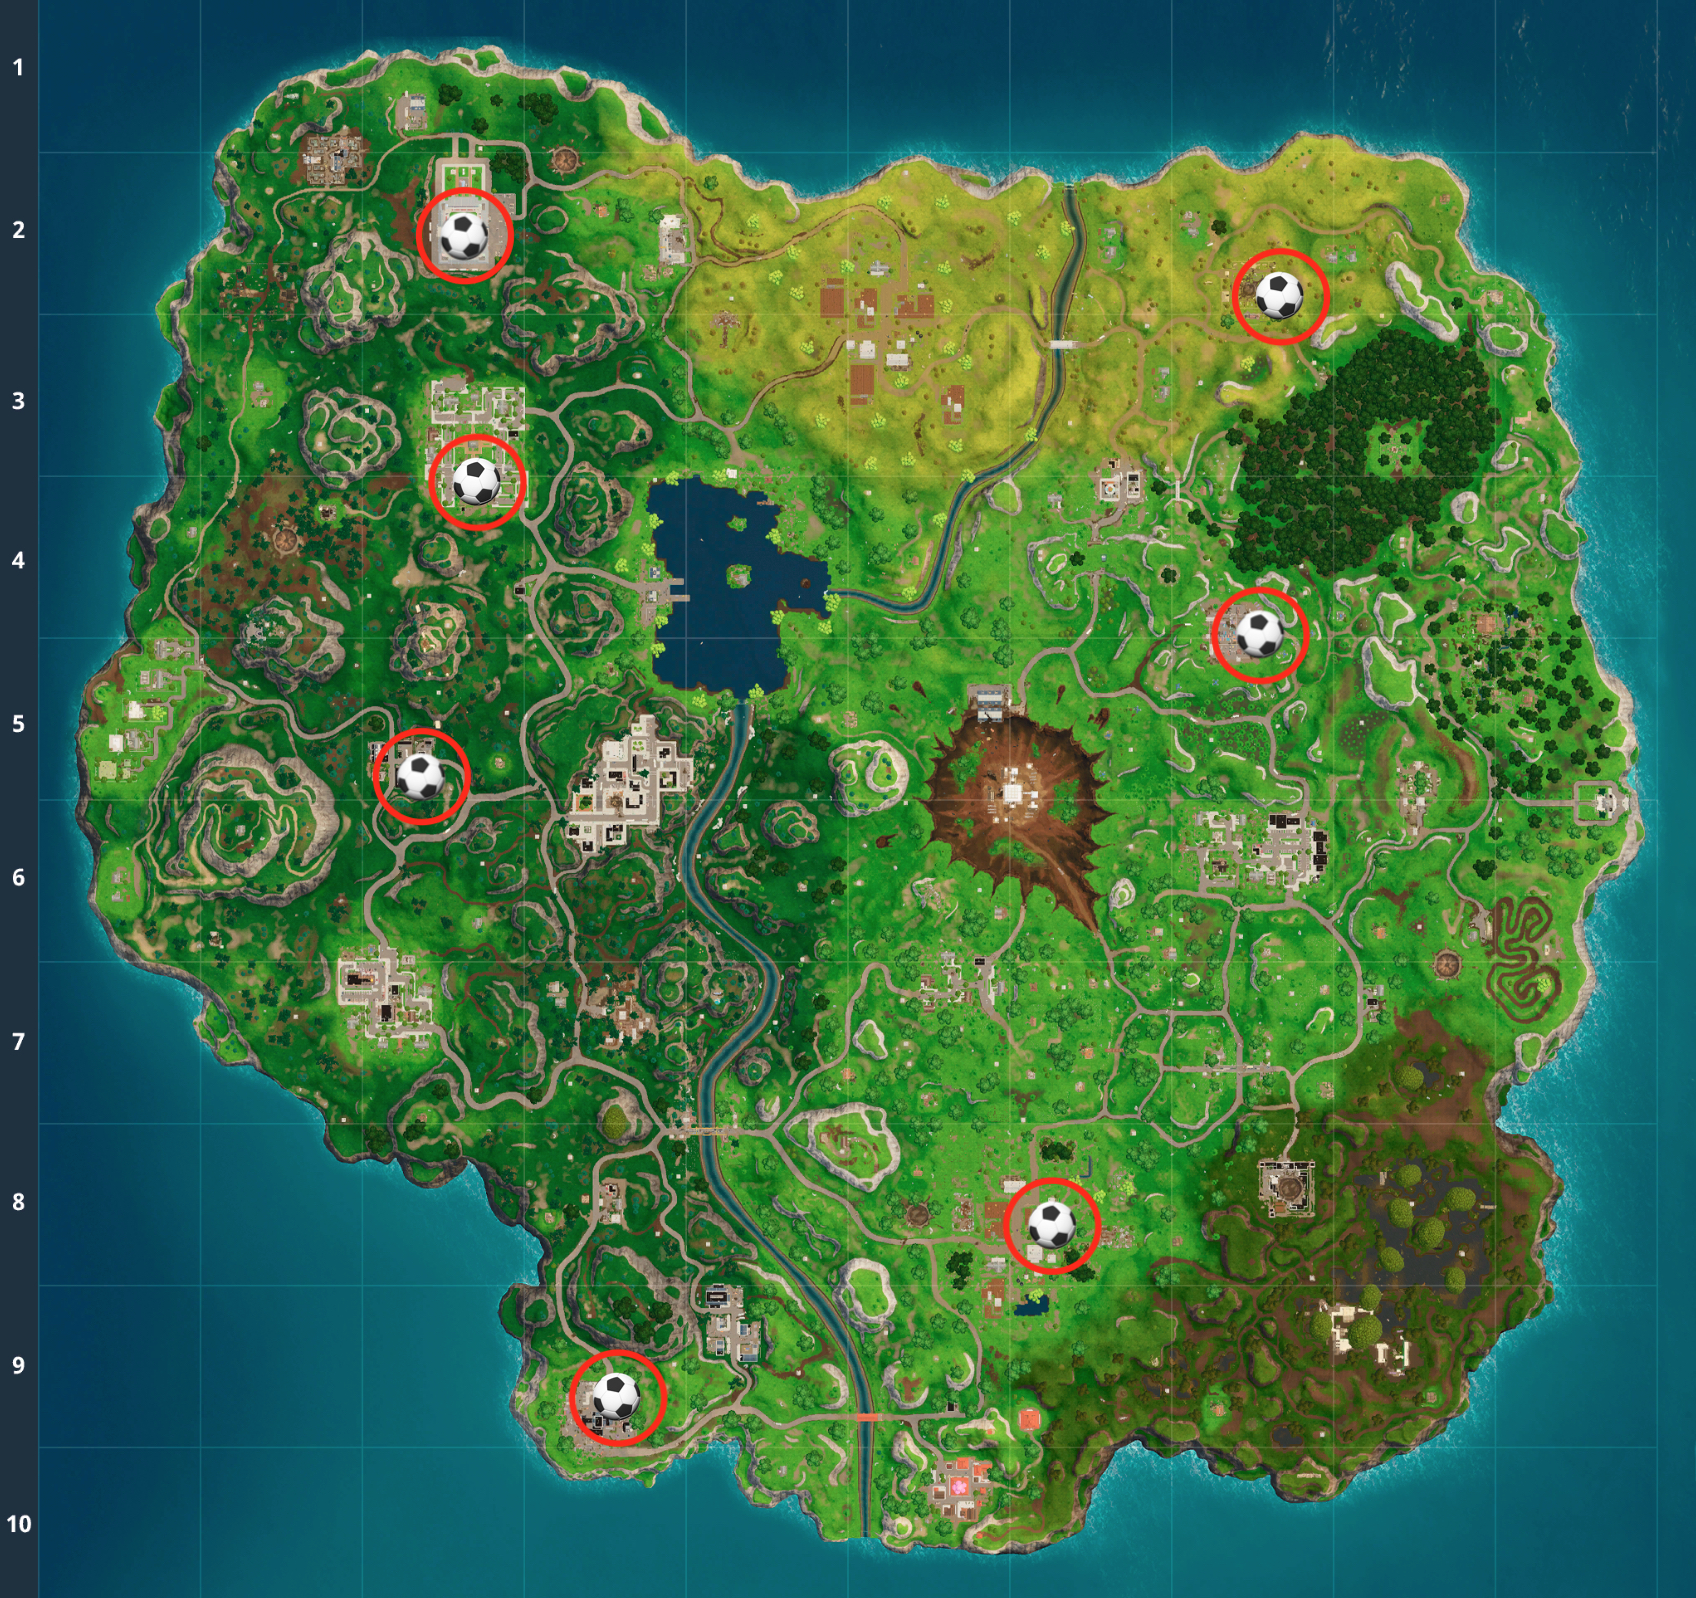 fortnite soccer field locations 7 pitches where you can score a goal inverse - soccer pitch locations fortnite